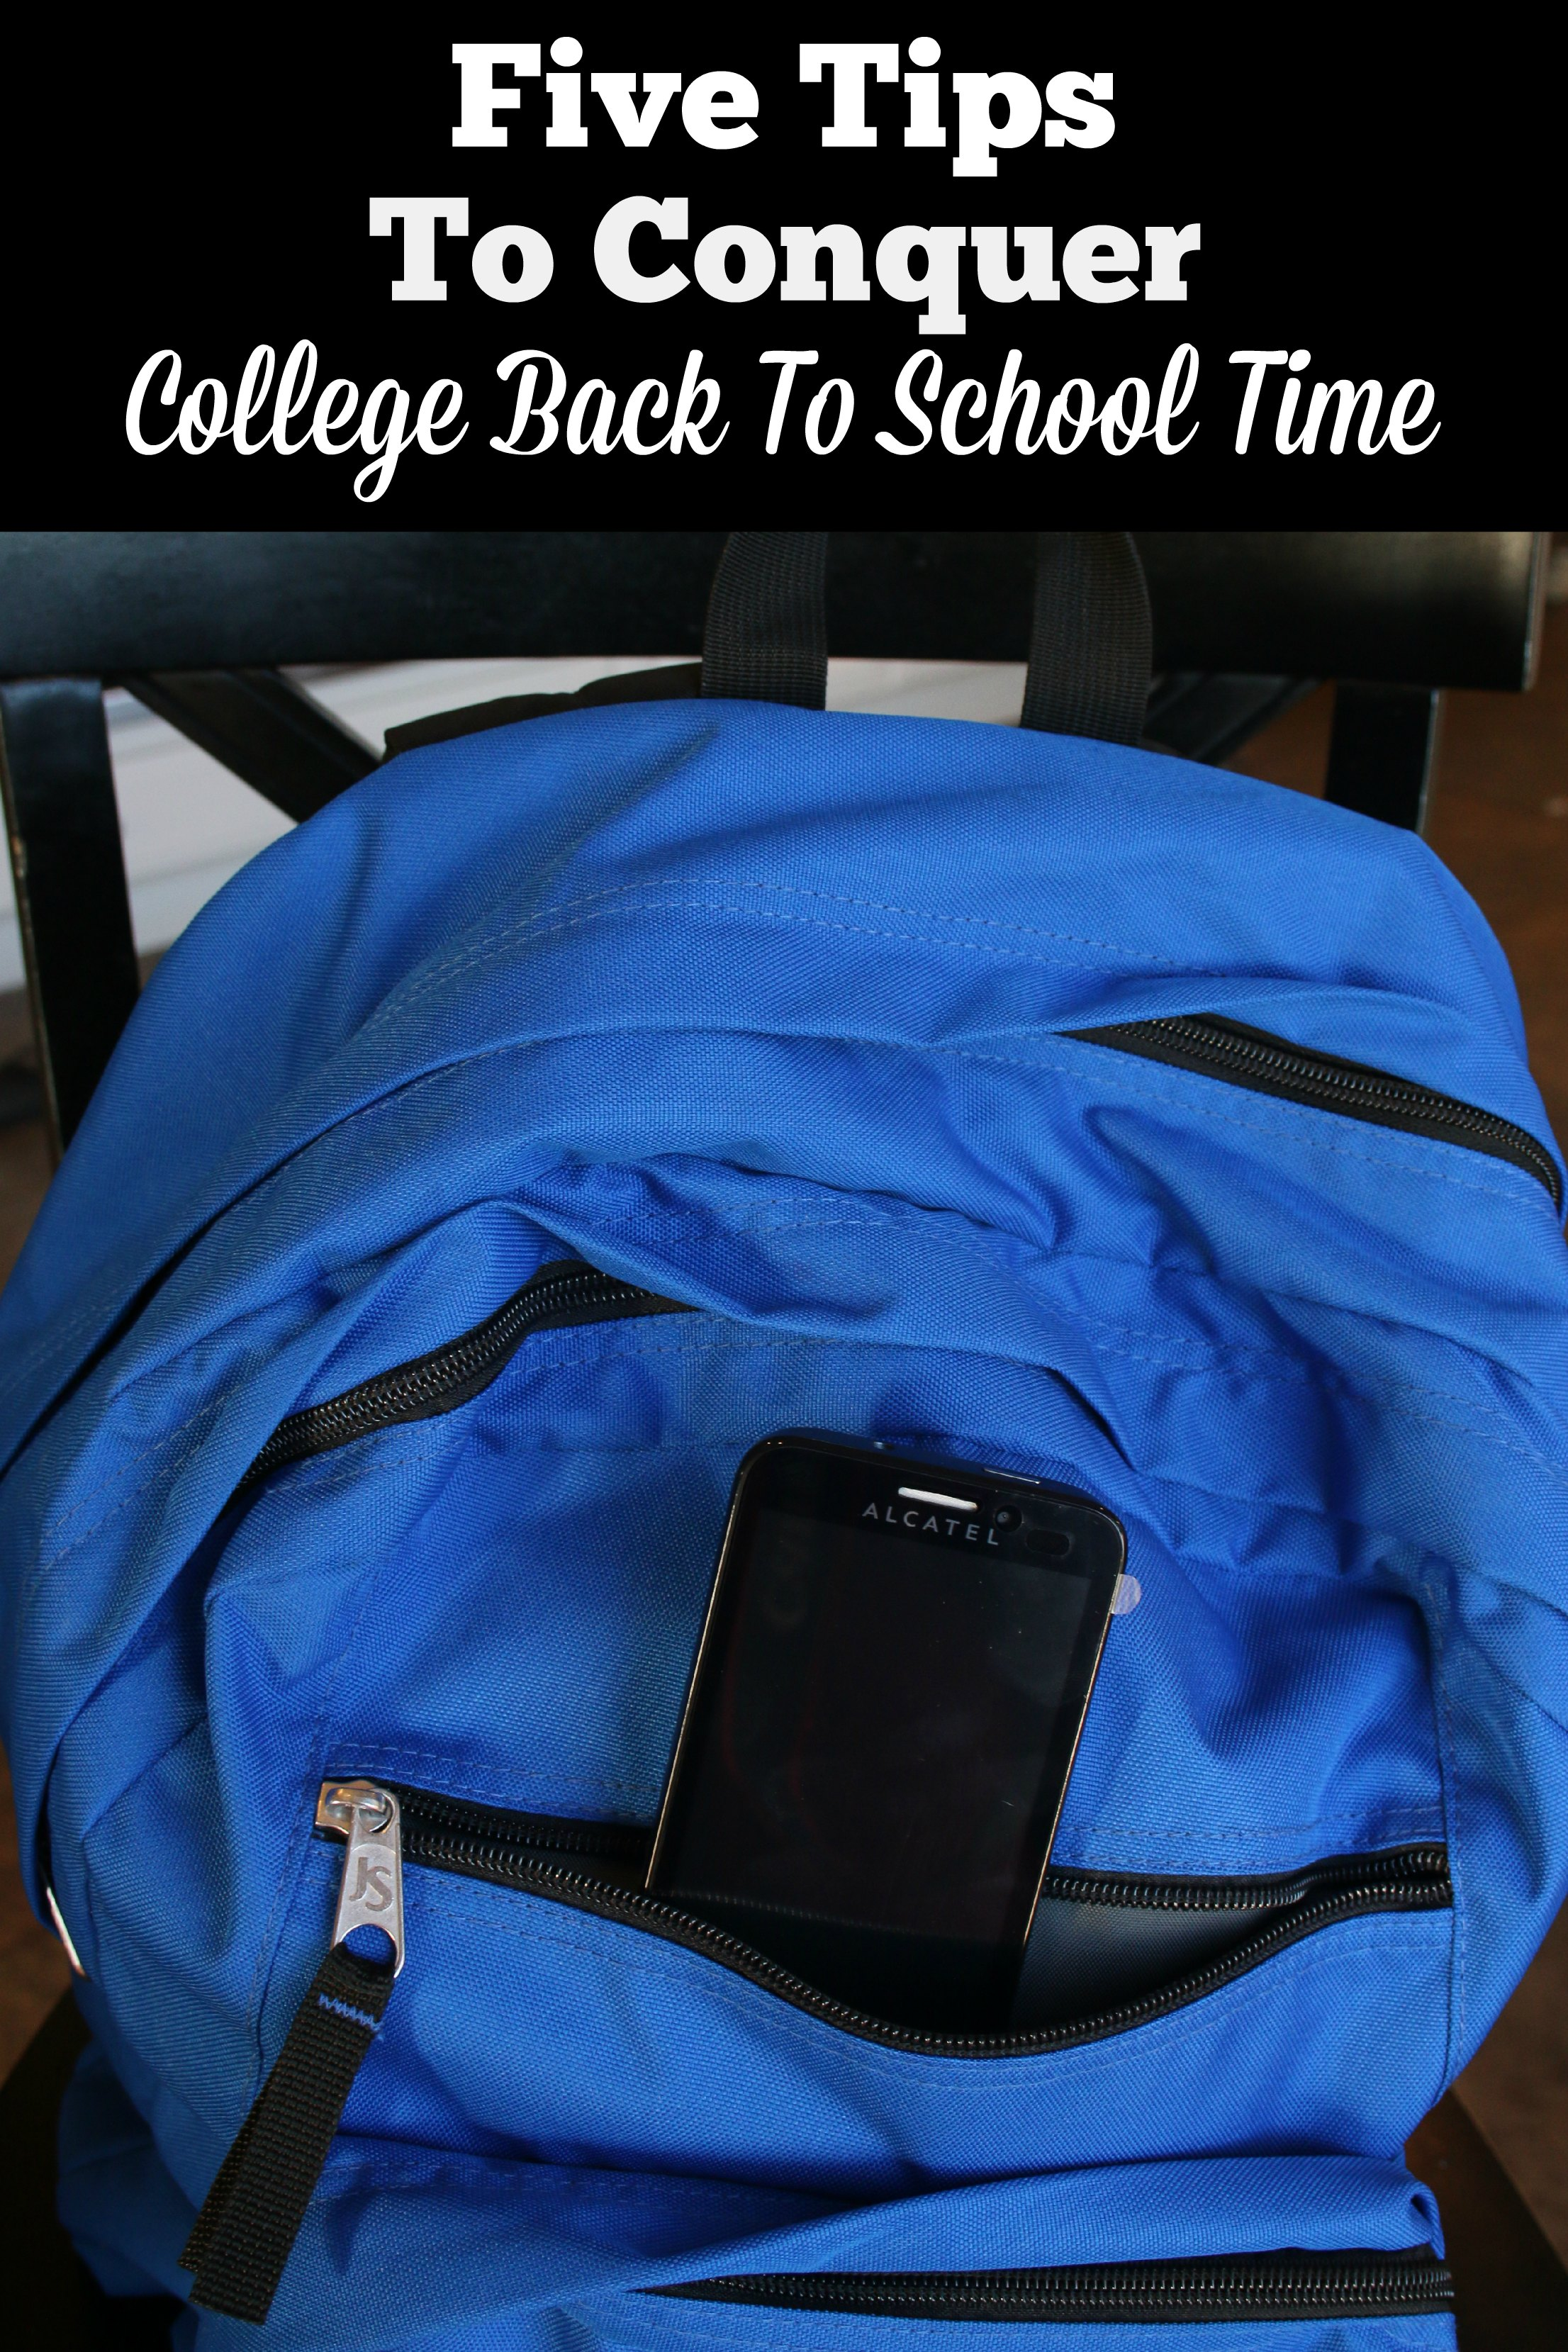 college back to school time